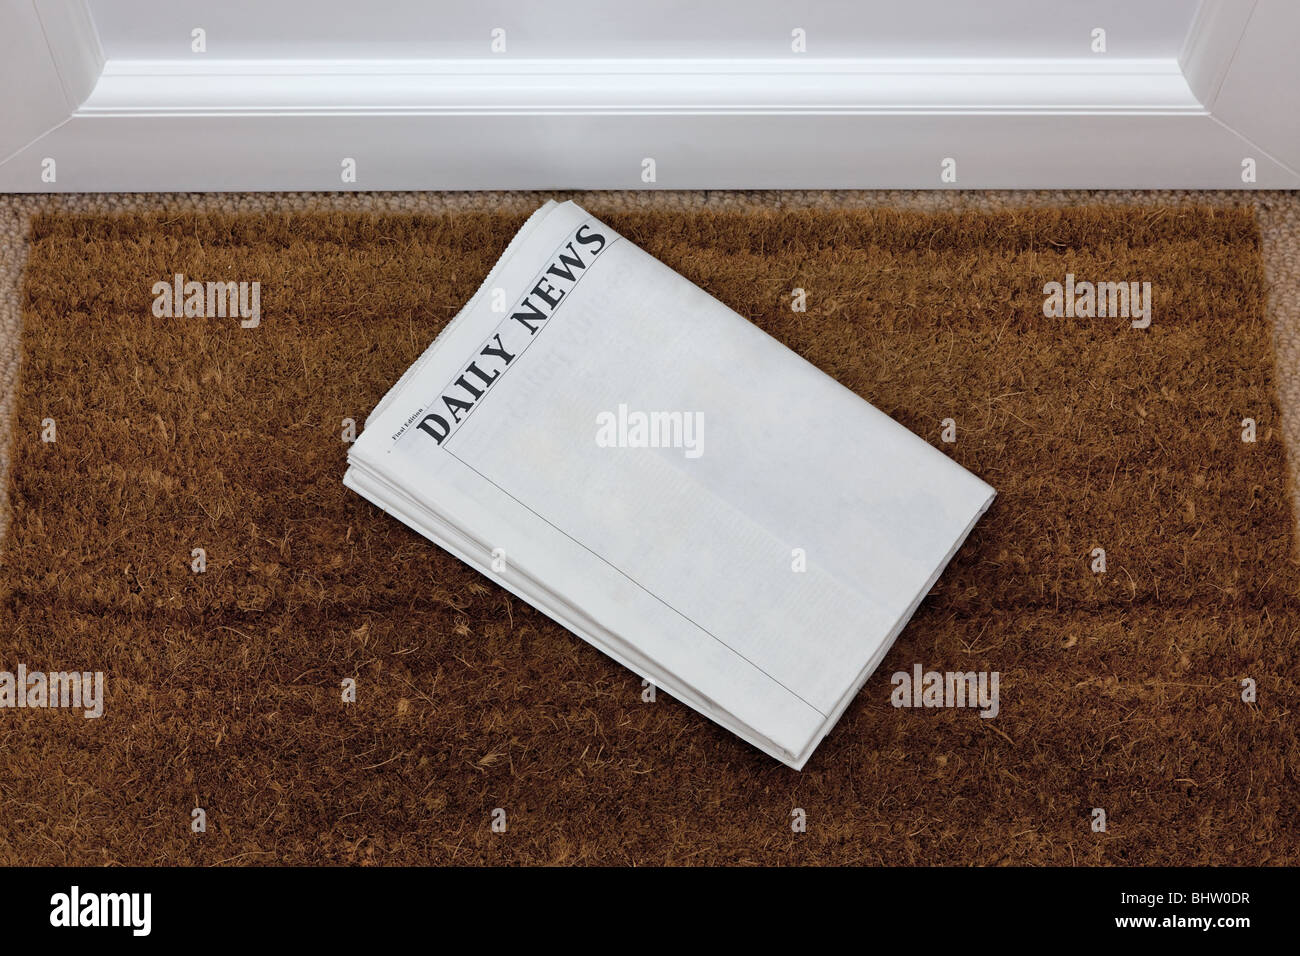 Newspaper lying on a doormat, blank to add your own text. Generic titles added by me. - Stock Image